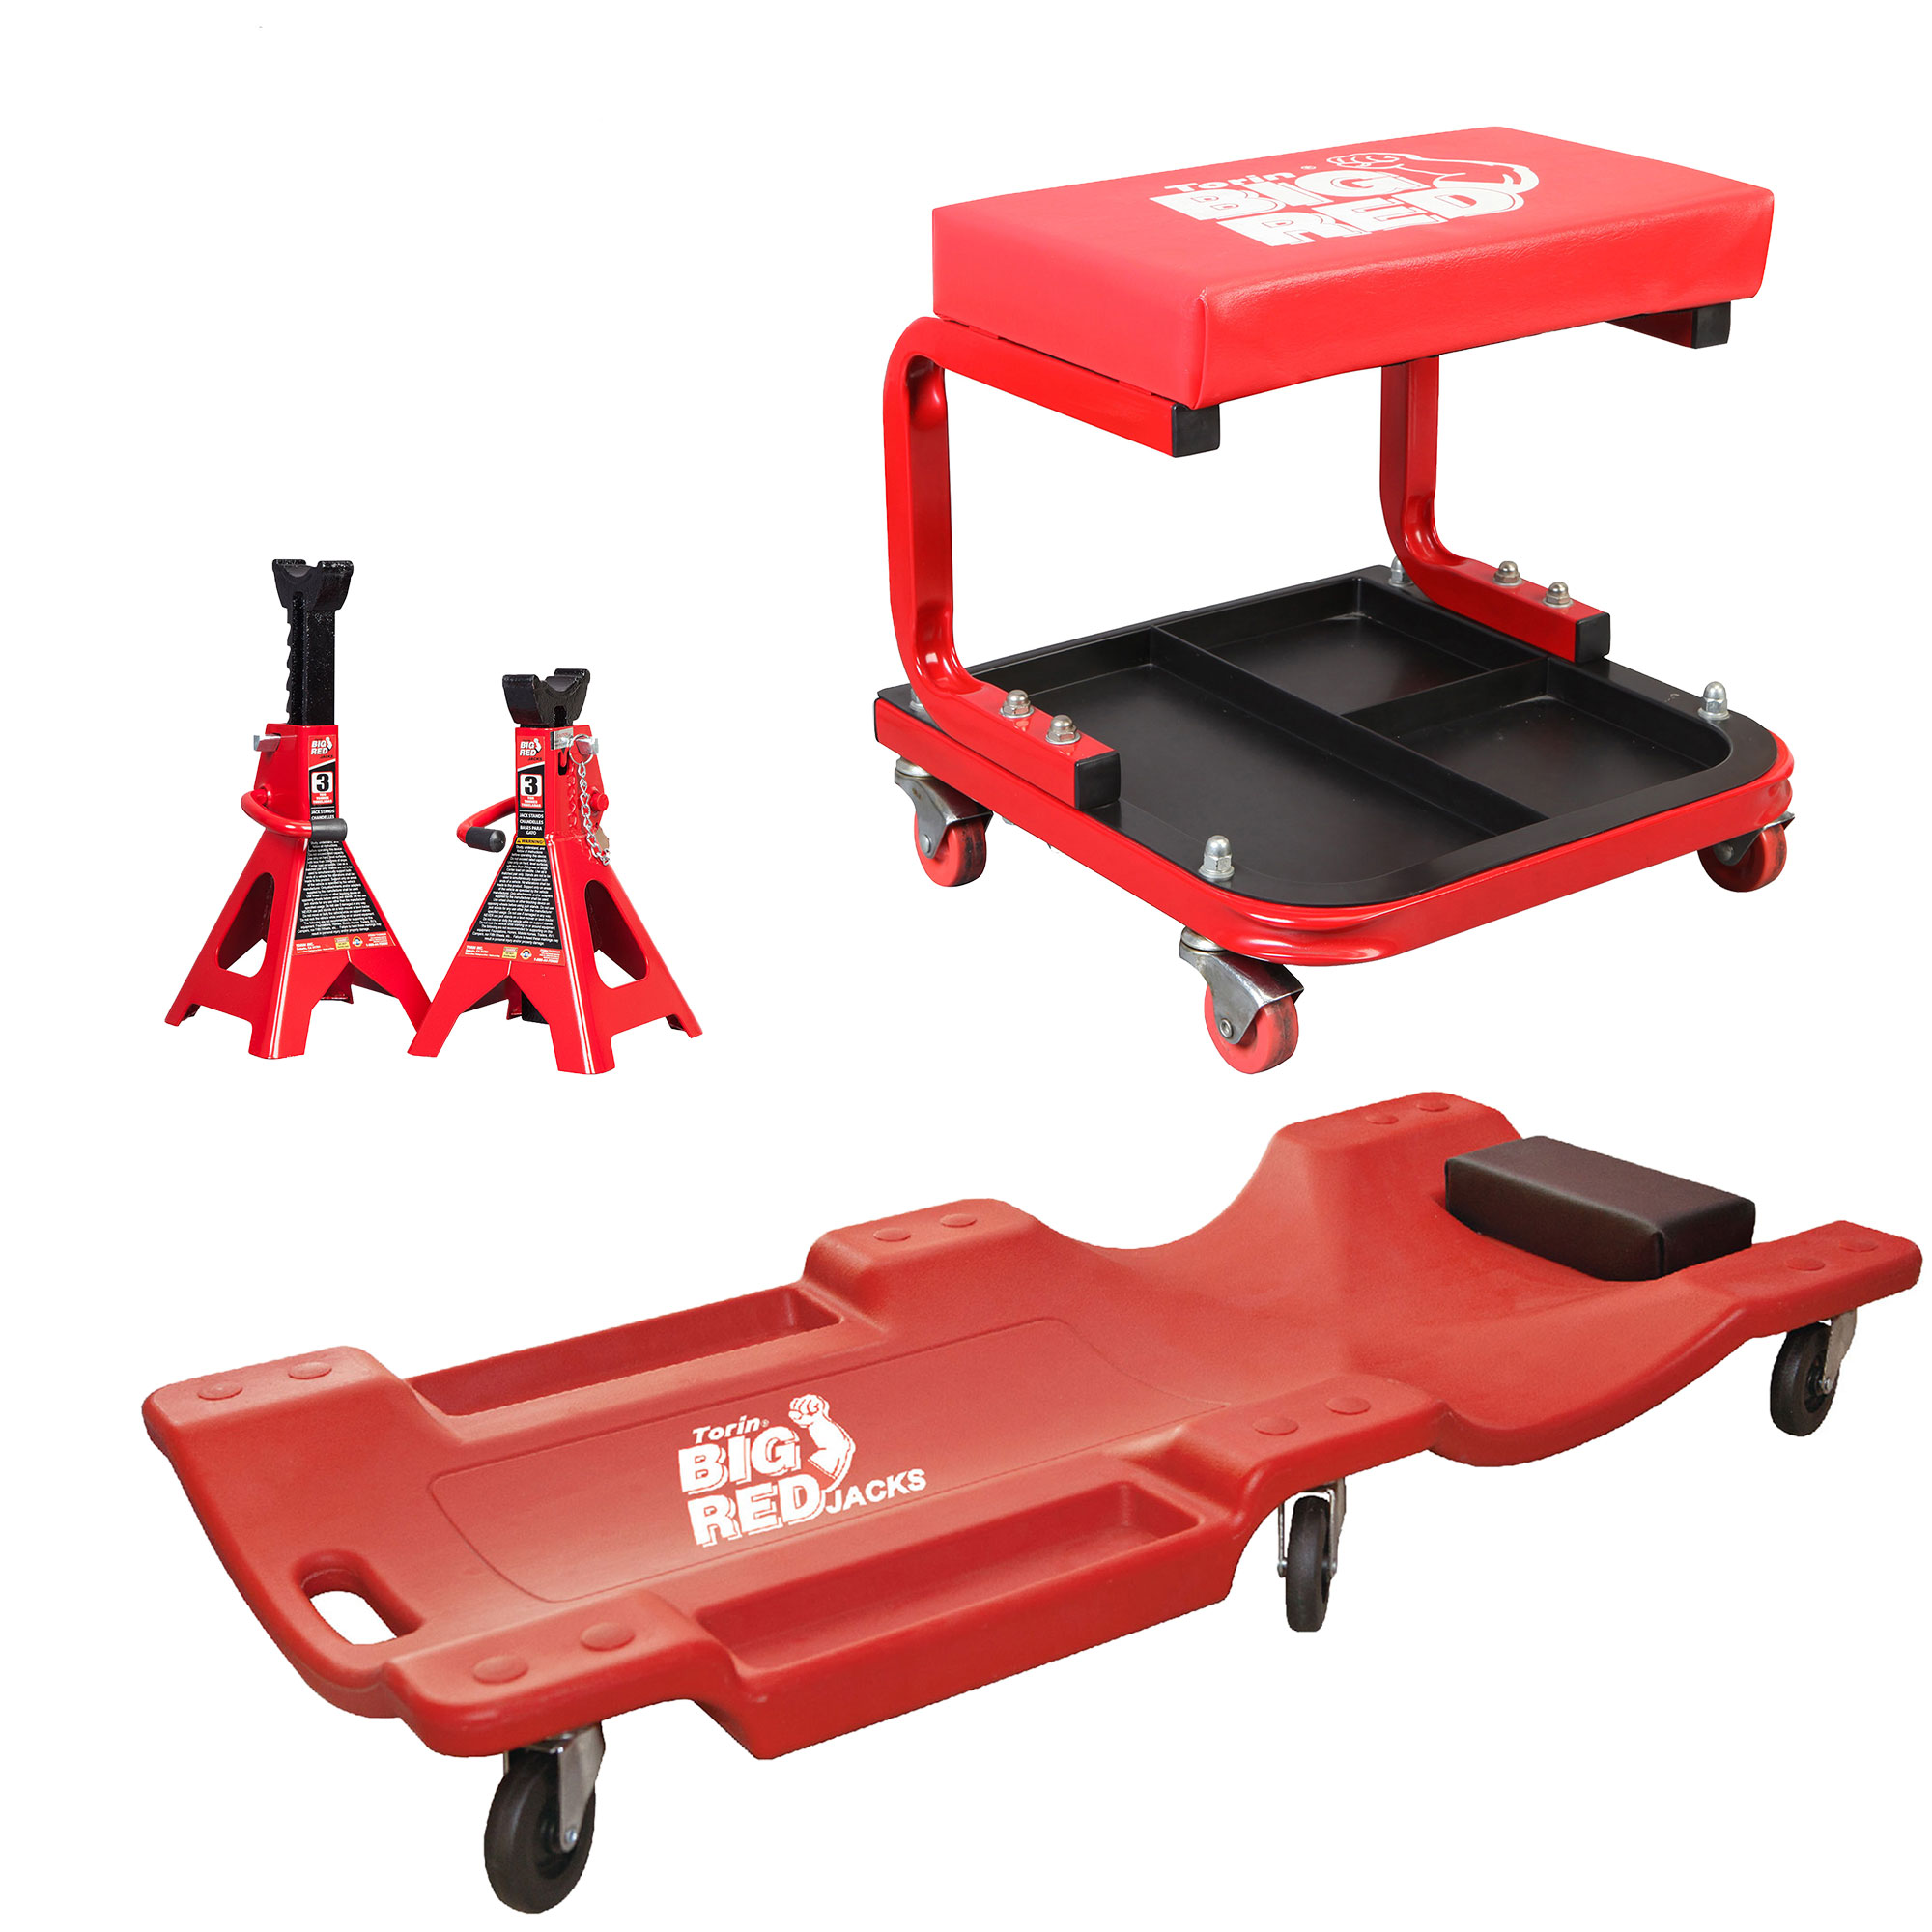 Torin Rolling Creeper Padded Seat Stool with Tool Tray w/ Jack Stands and Cart